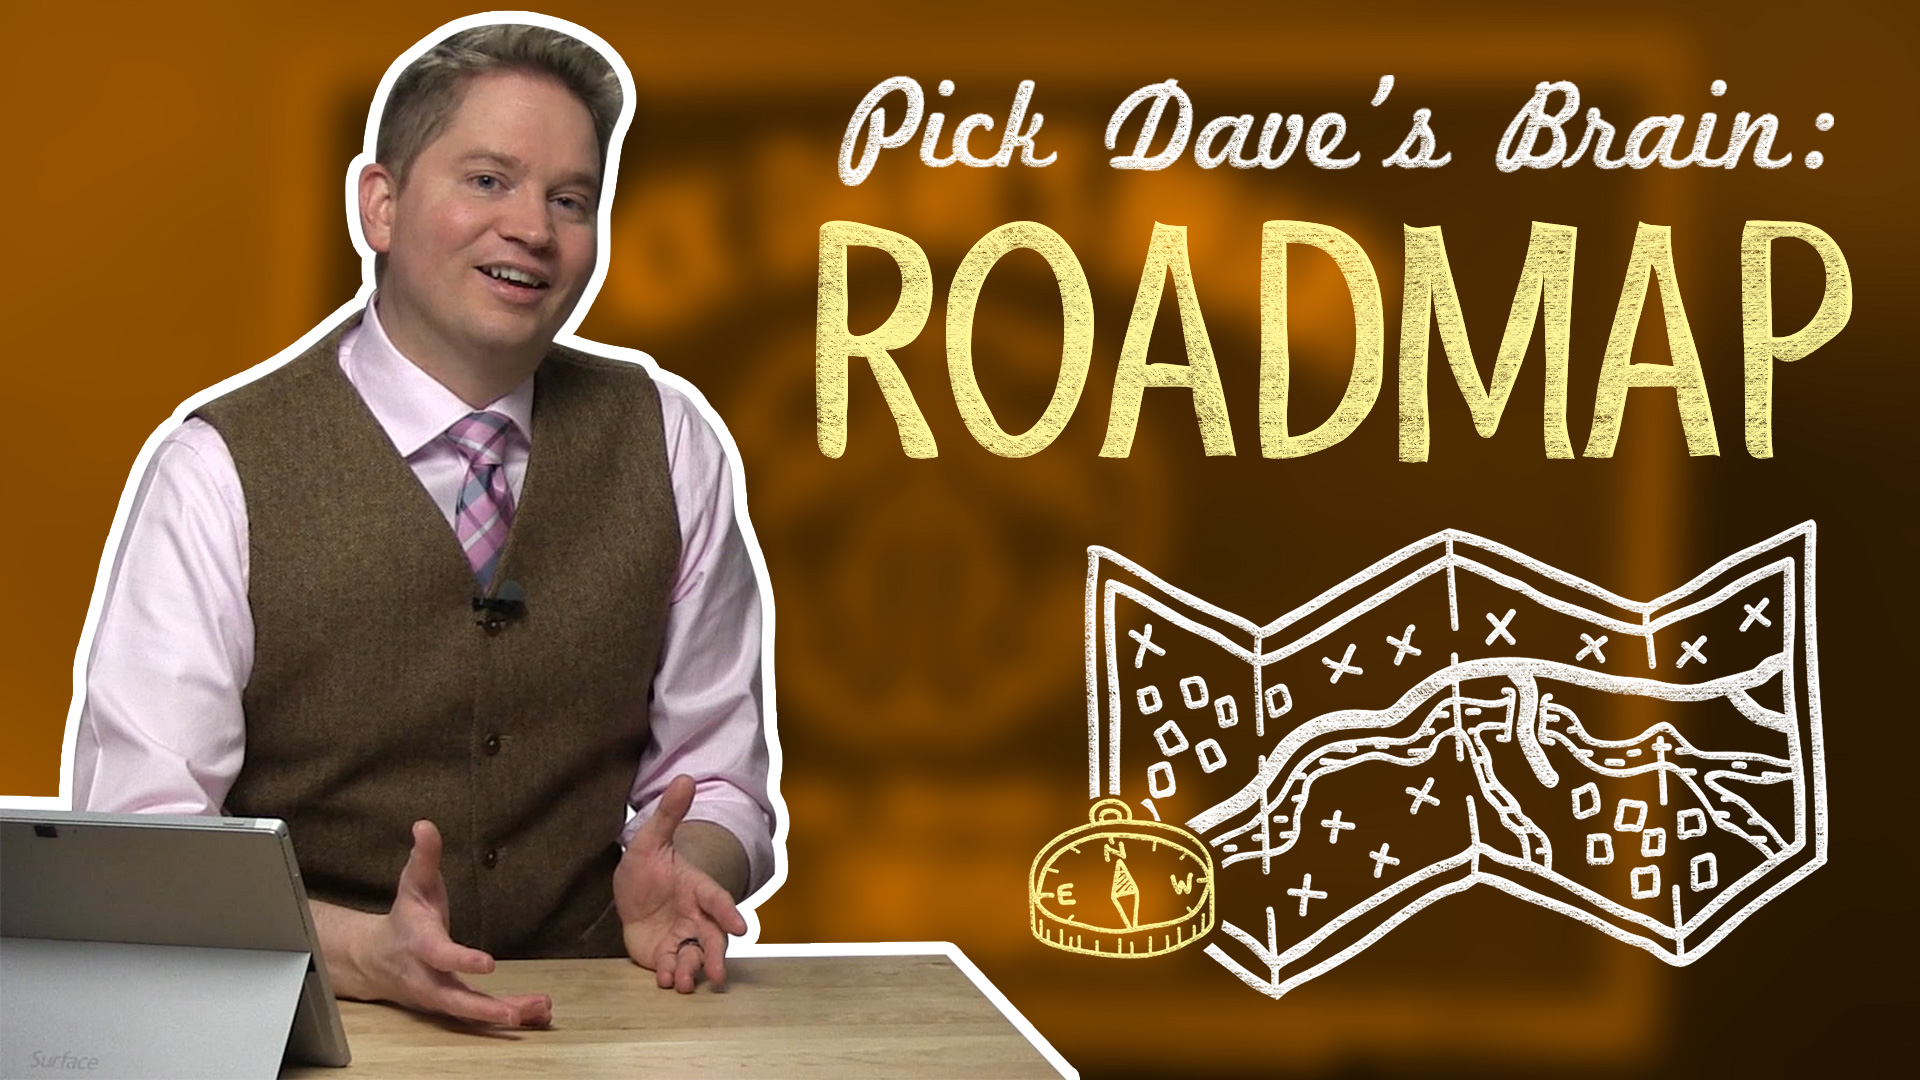 Roadmaps: Where are you going and when will you get there? – Pick Dave's Brain